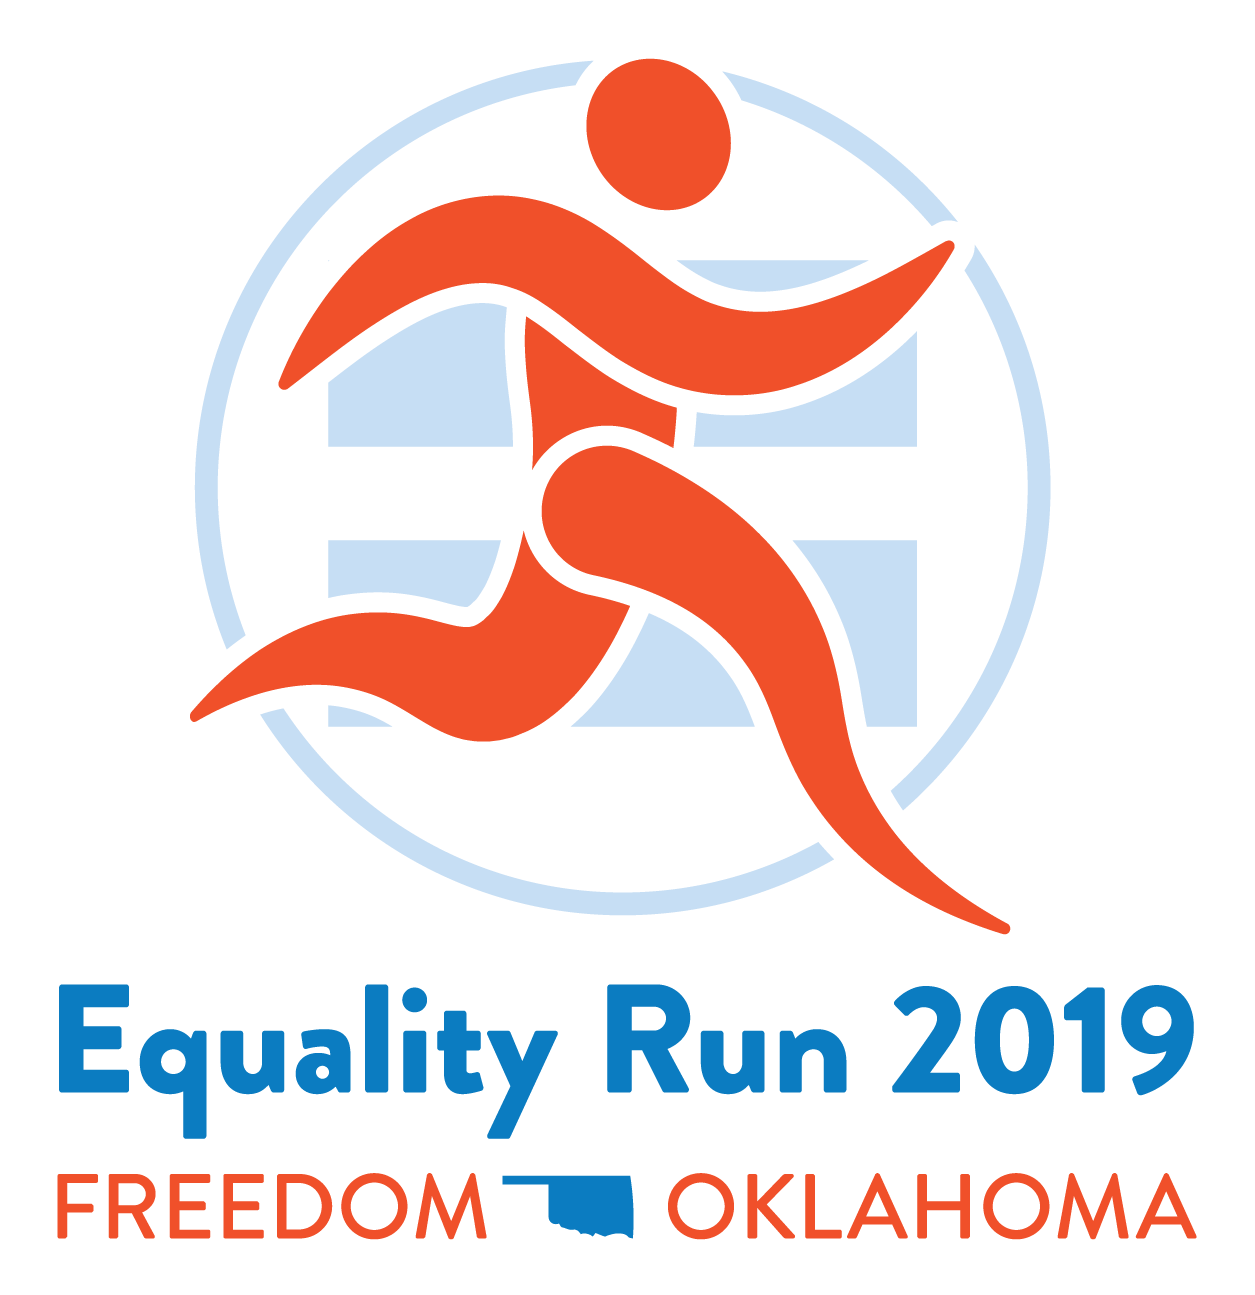 equalityrun-logo-transparent-02.png